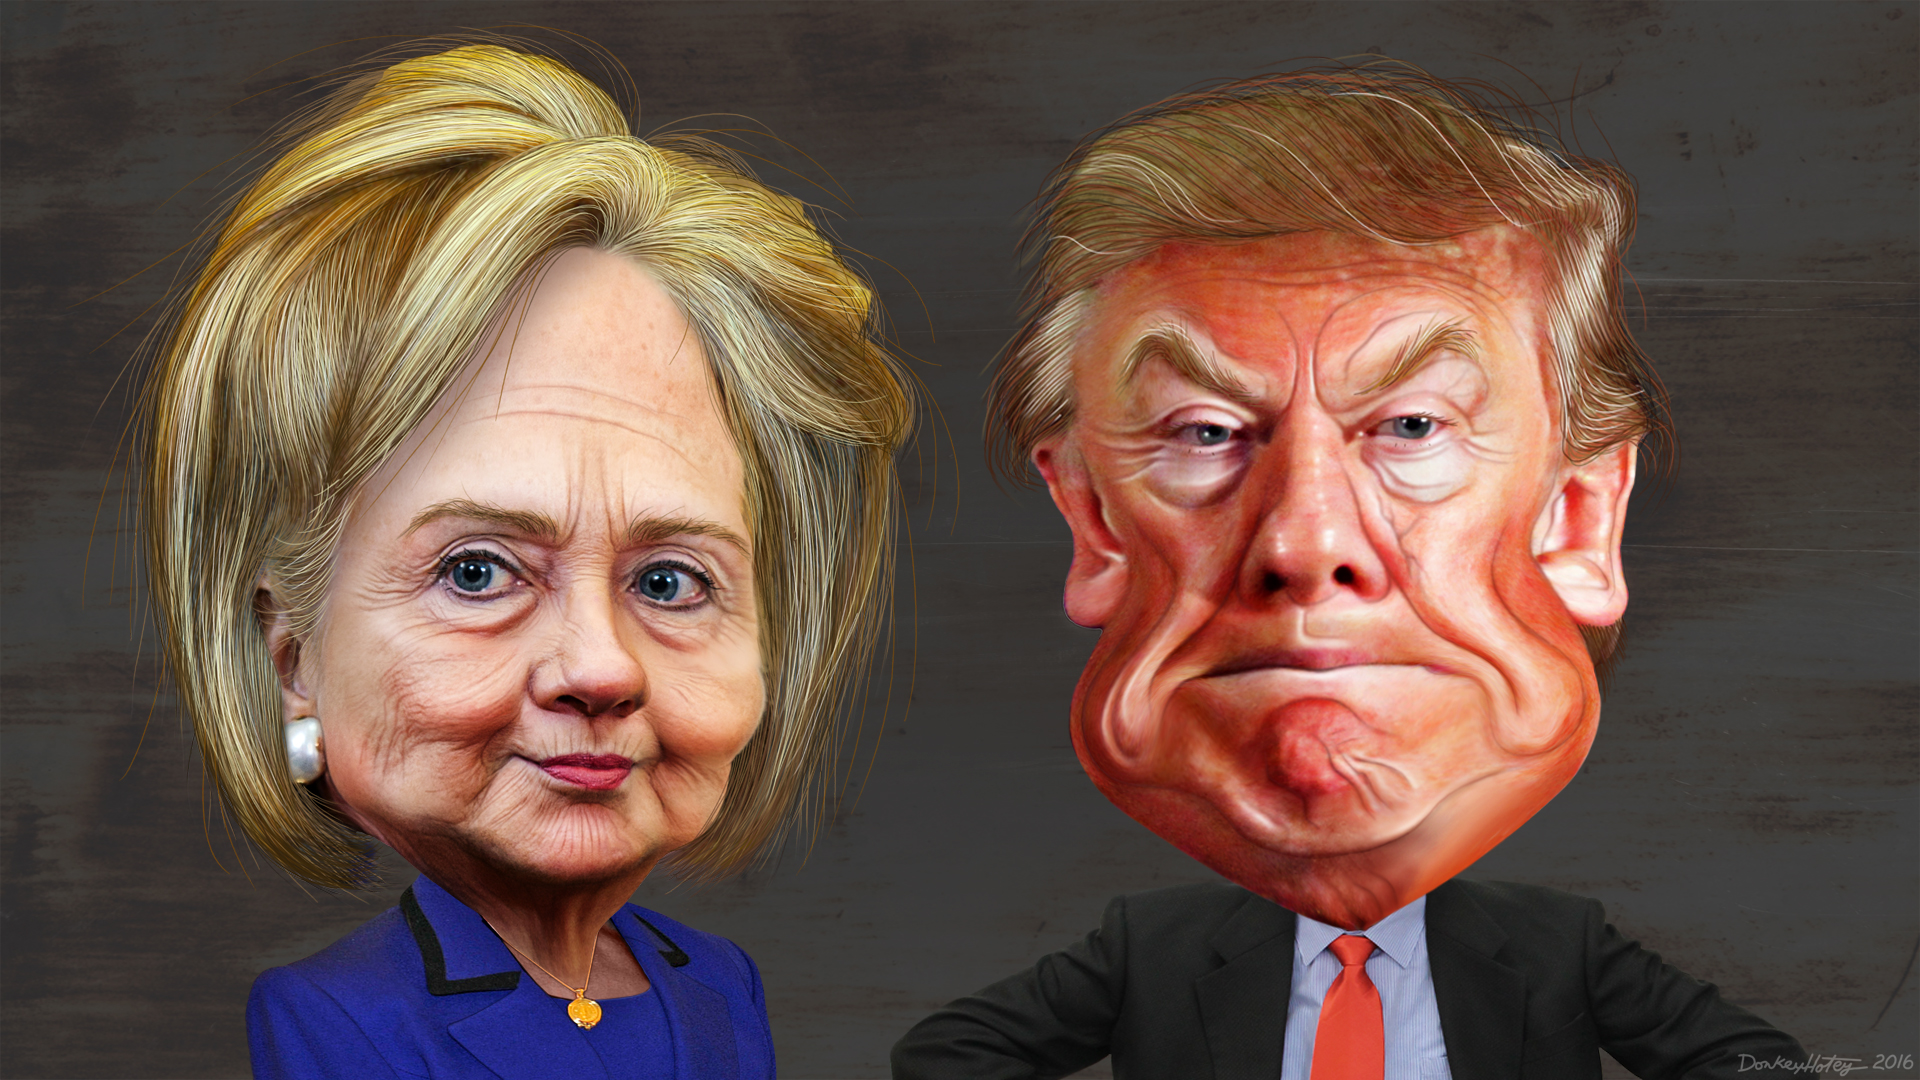 donald trump vs hillary clinton debate parody. Black Bedroom Furniture Sets. Home Design Ideas